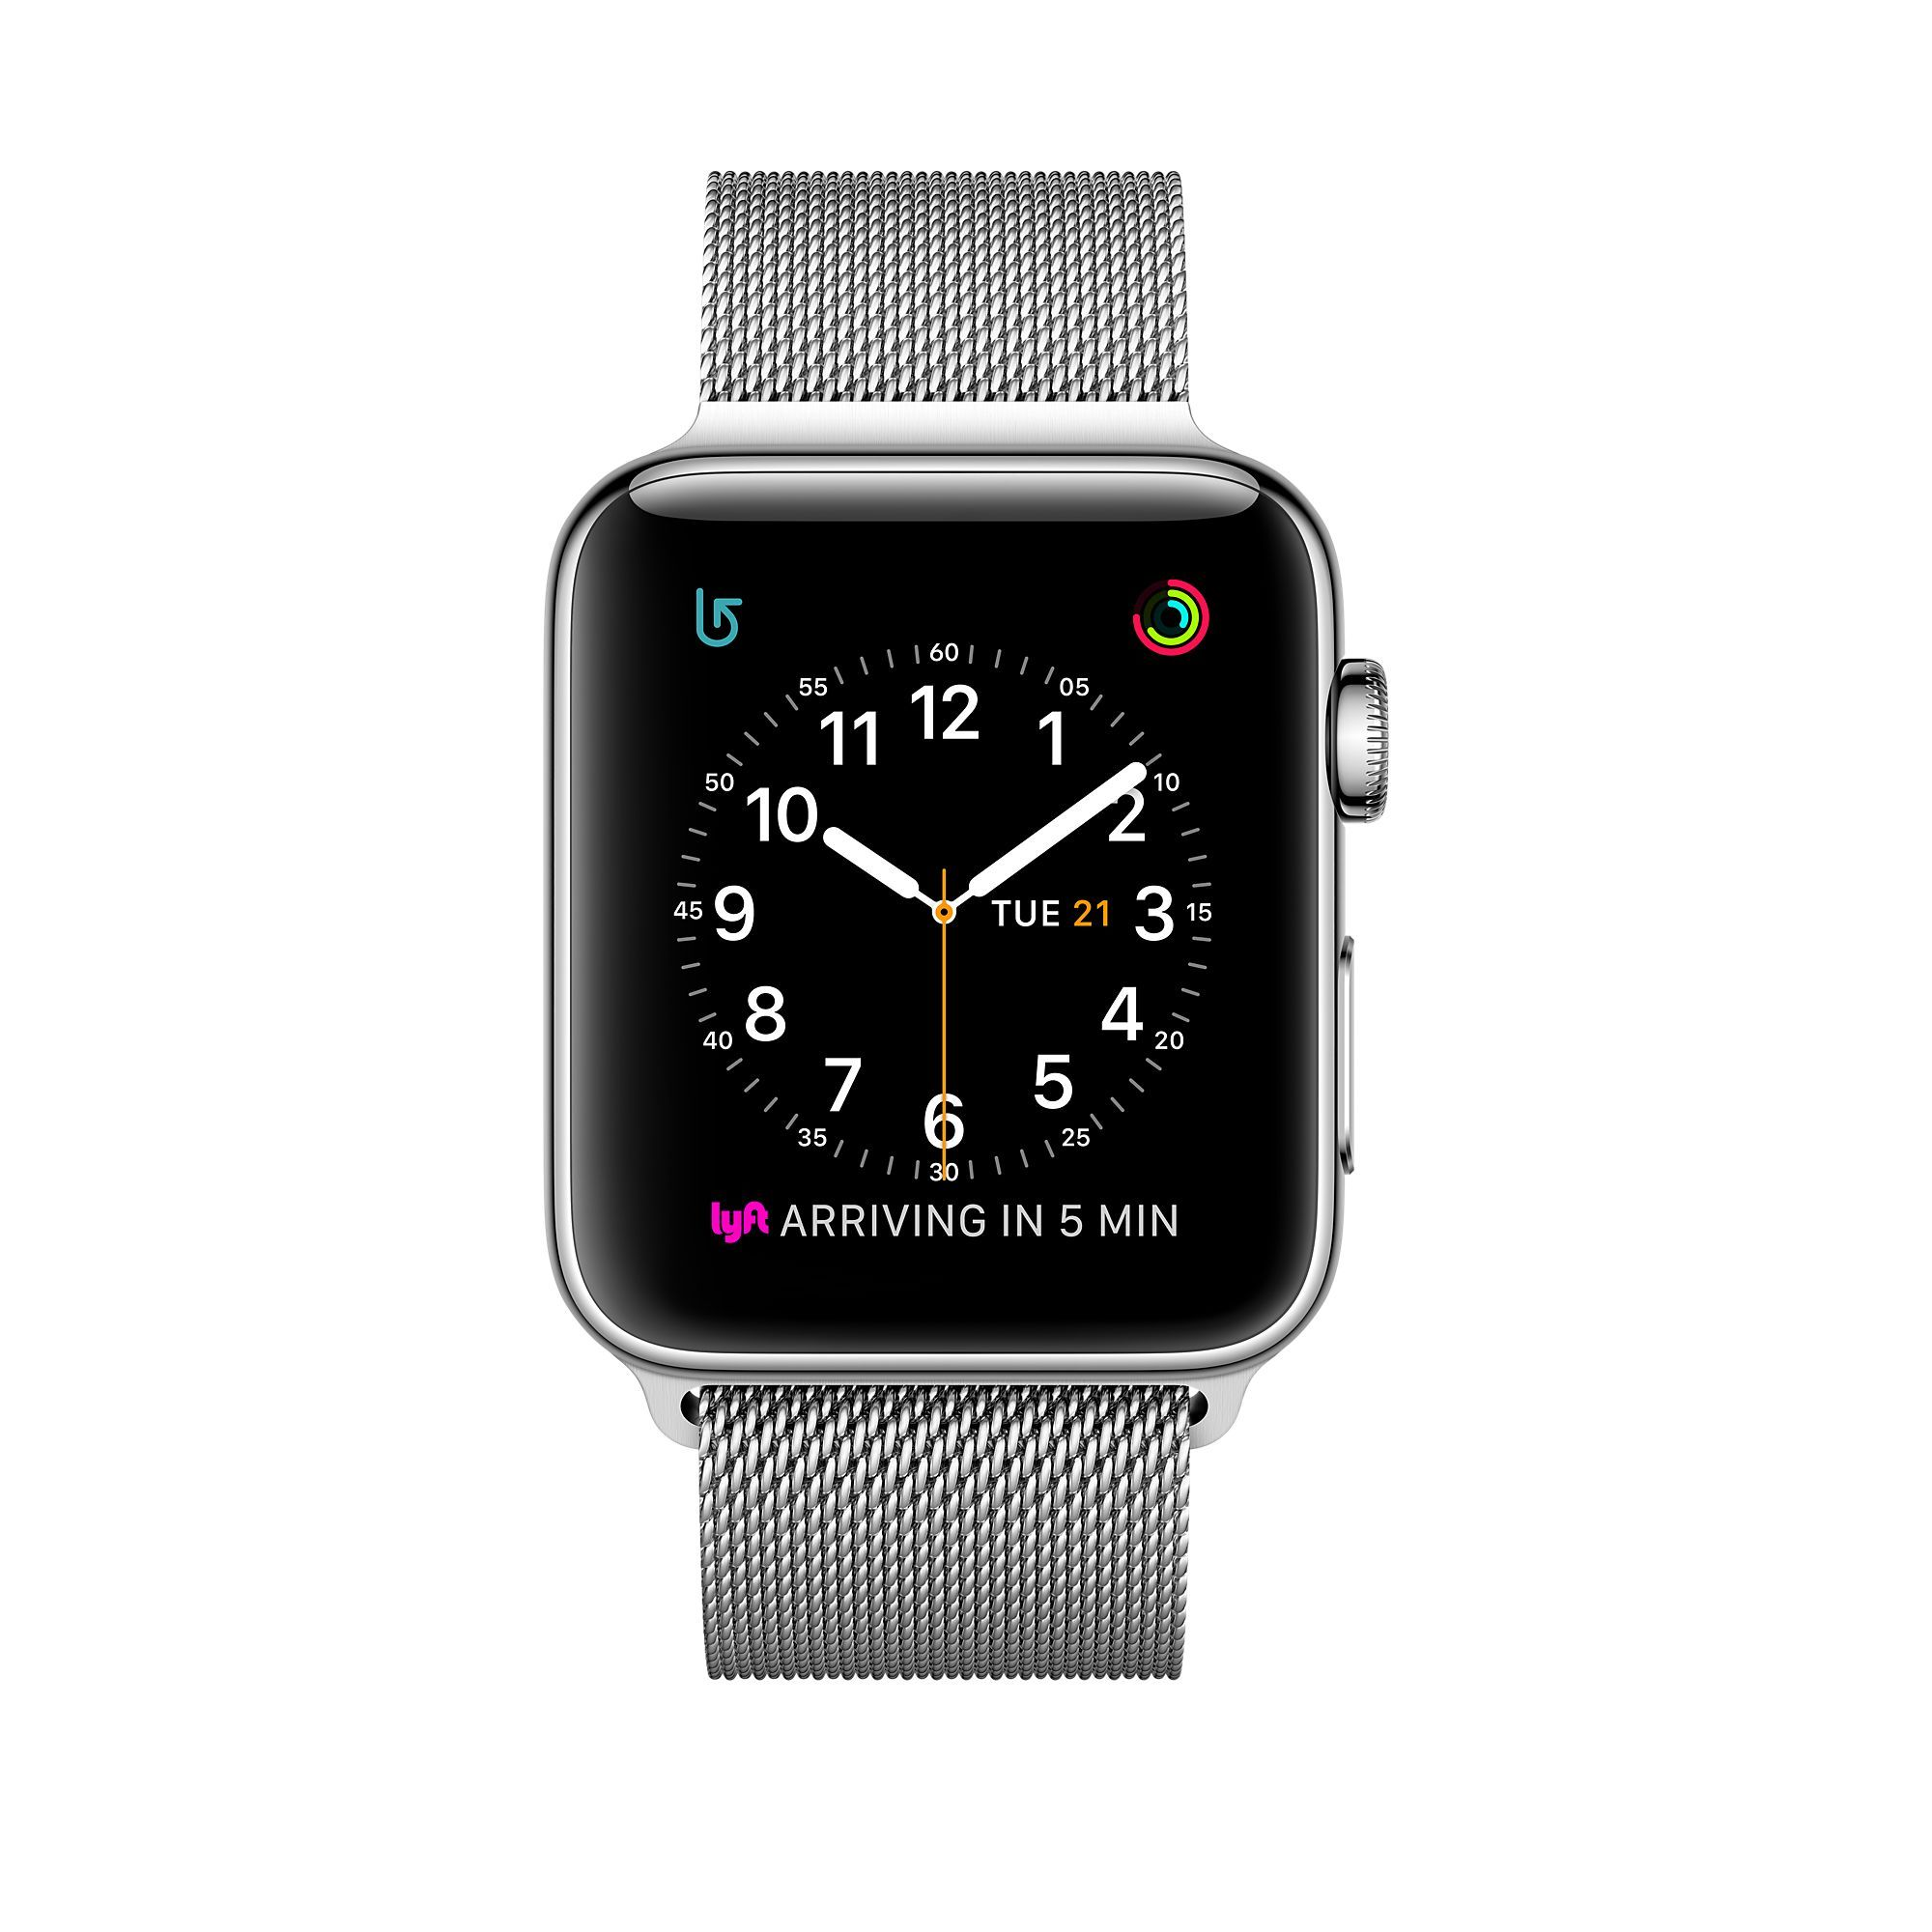 Shop Apple Watch Series 2 Featuring Built In Gps In A 42mm Stainless Steel Case With Milanese Loop Buy Now With Fast Free Shipping